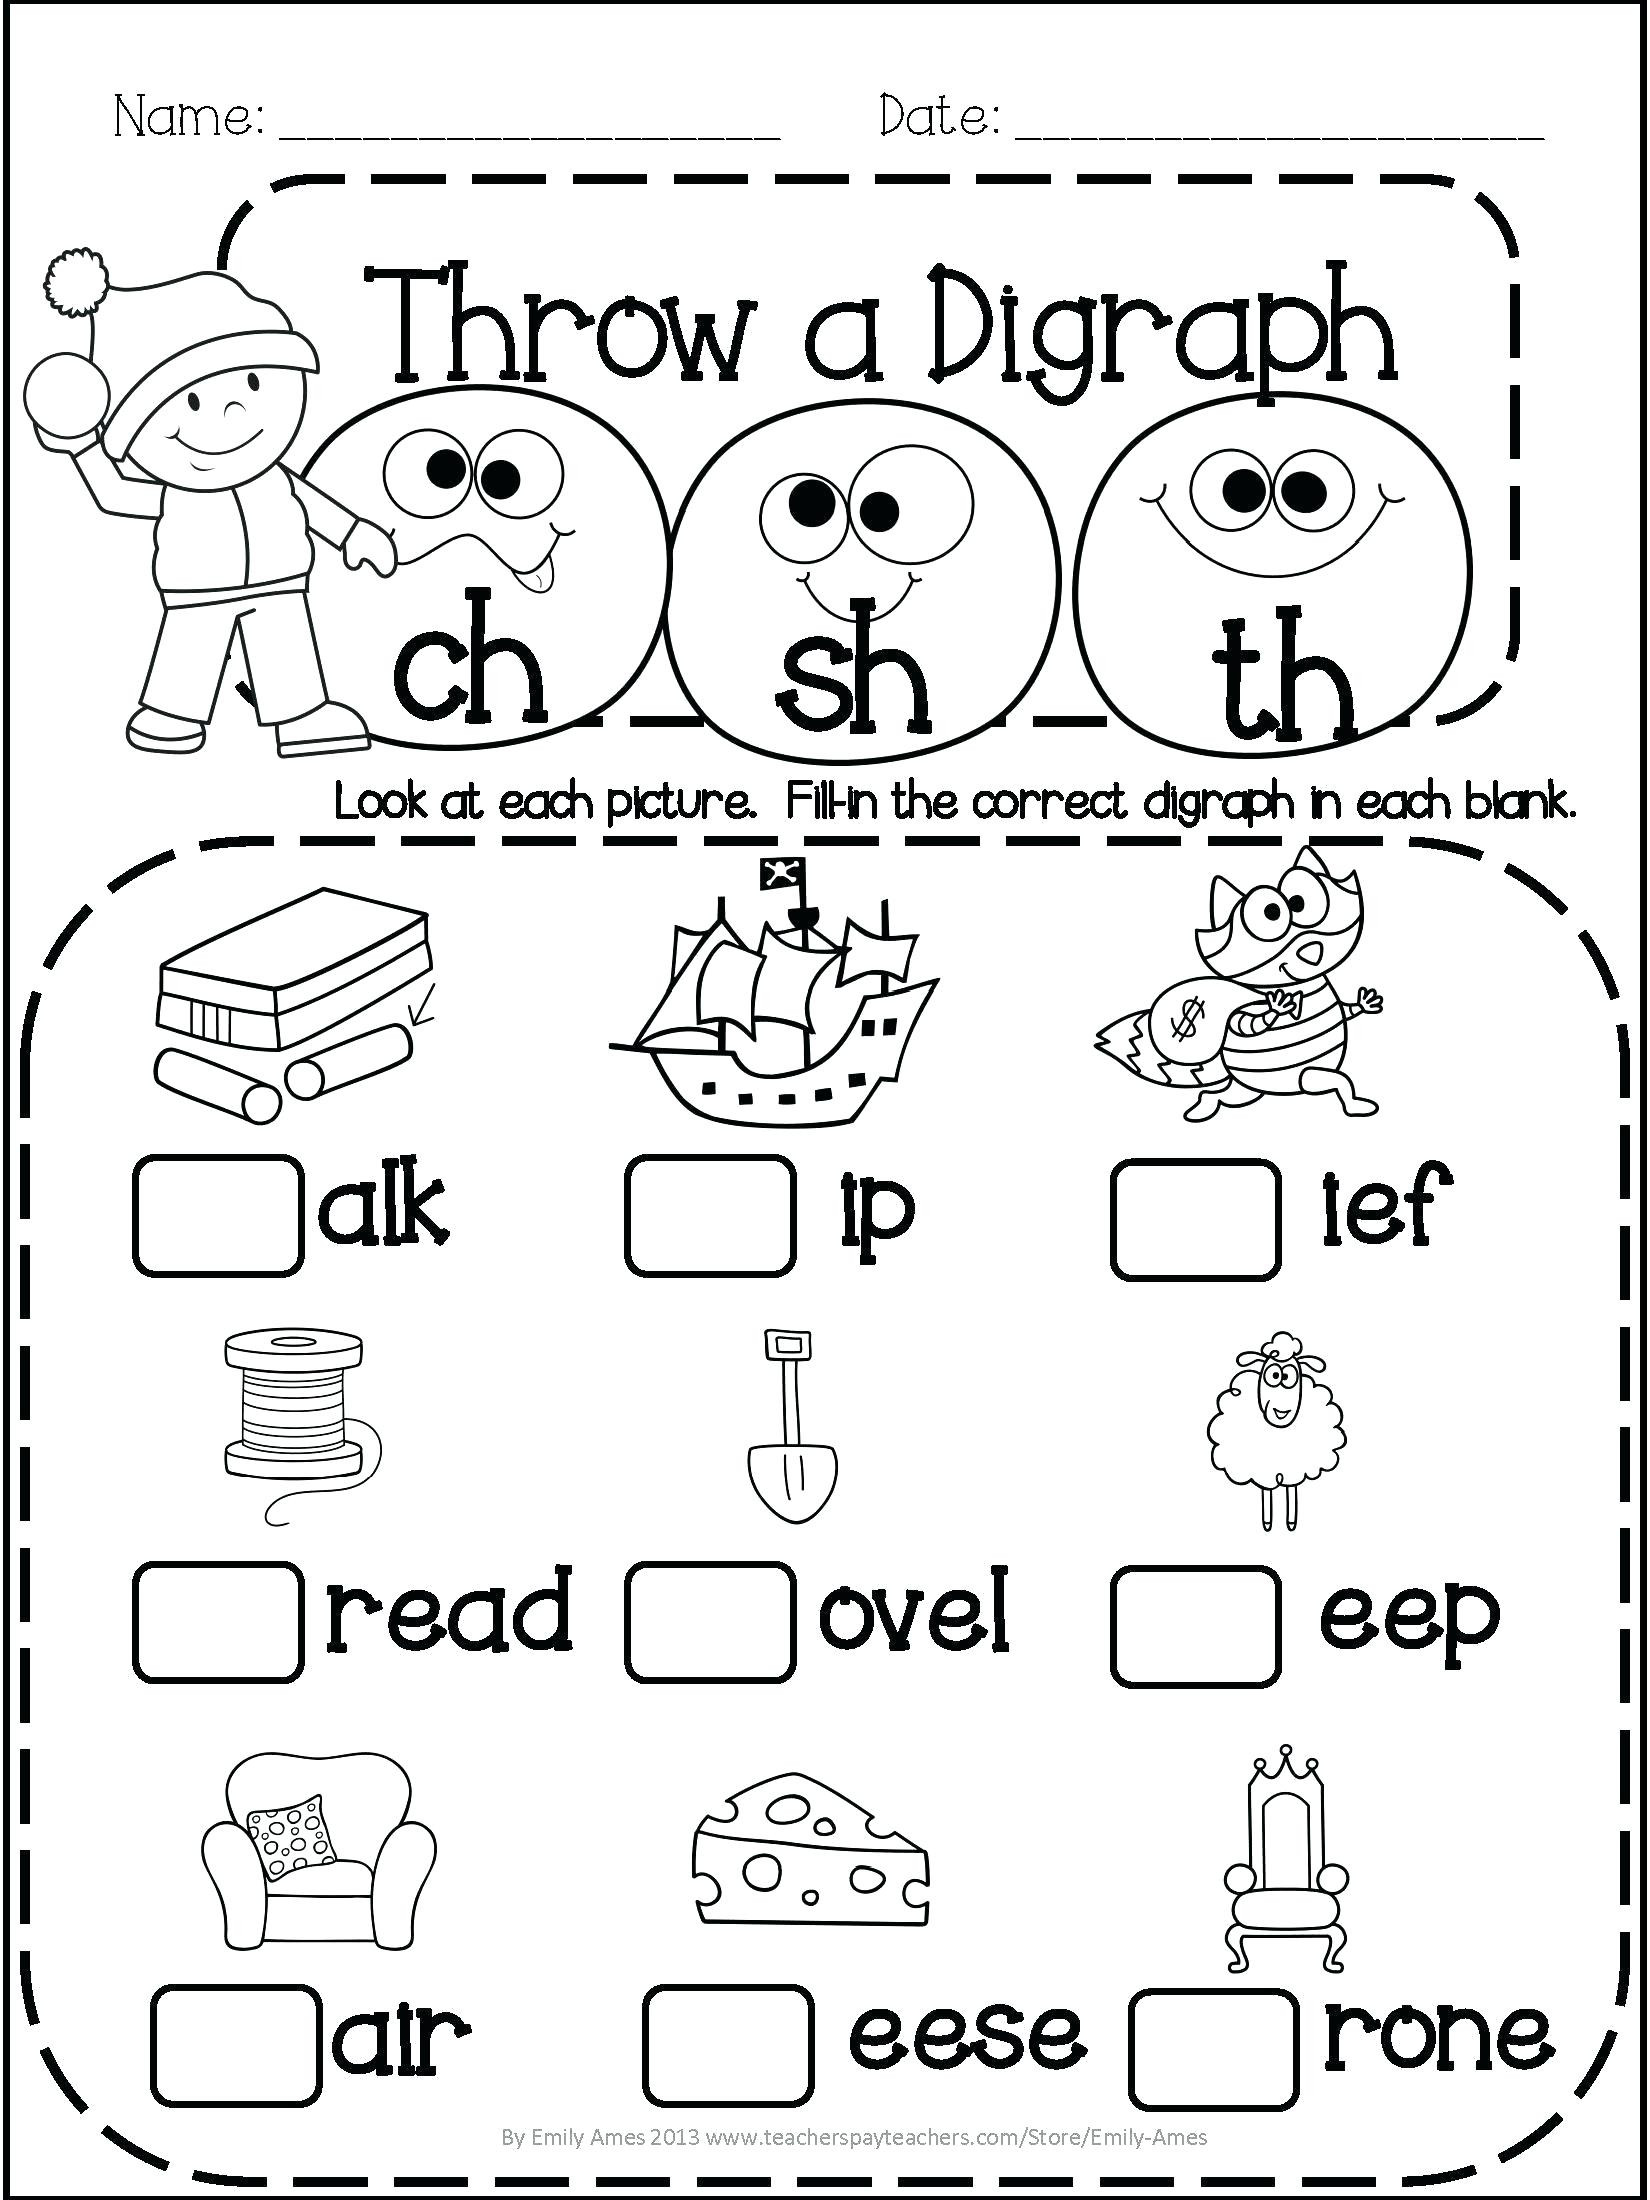 Minute Math Worksheets 1st Grade Generationinitiative Free Printable Math Worksheets 5th